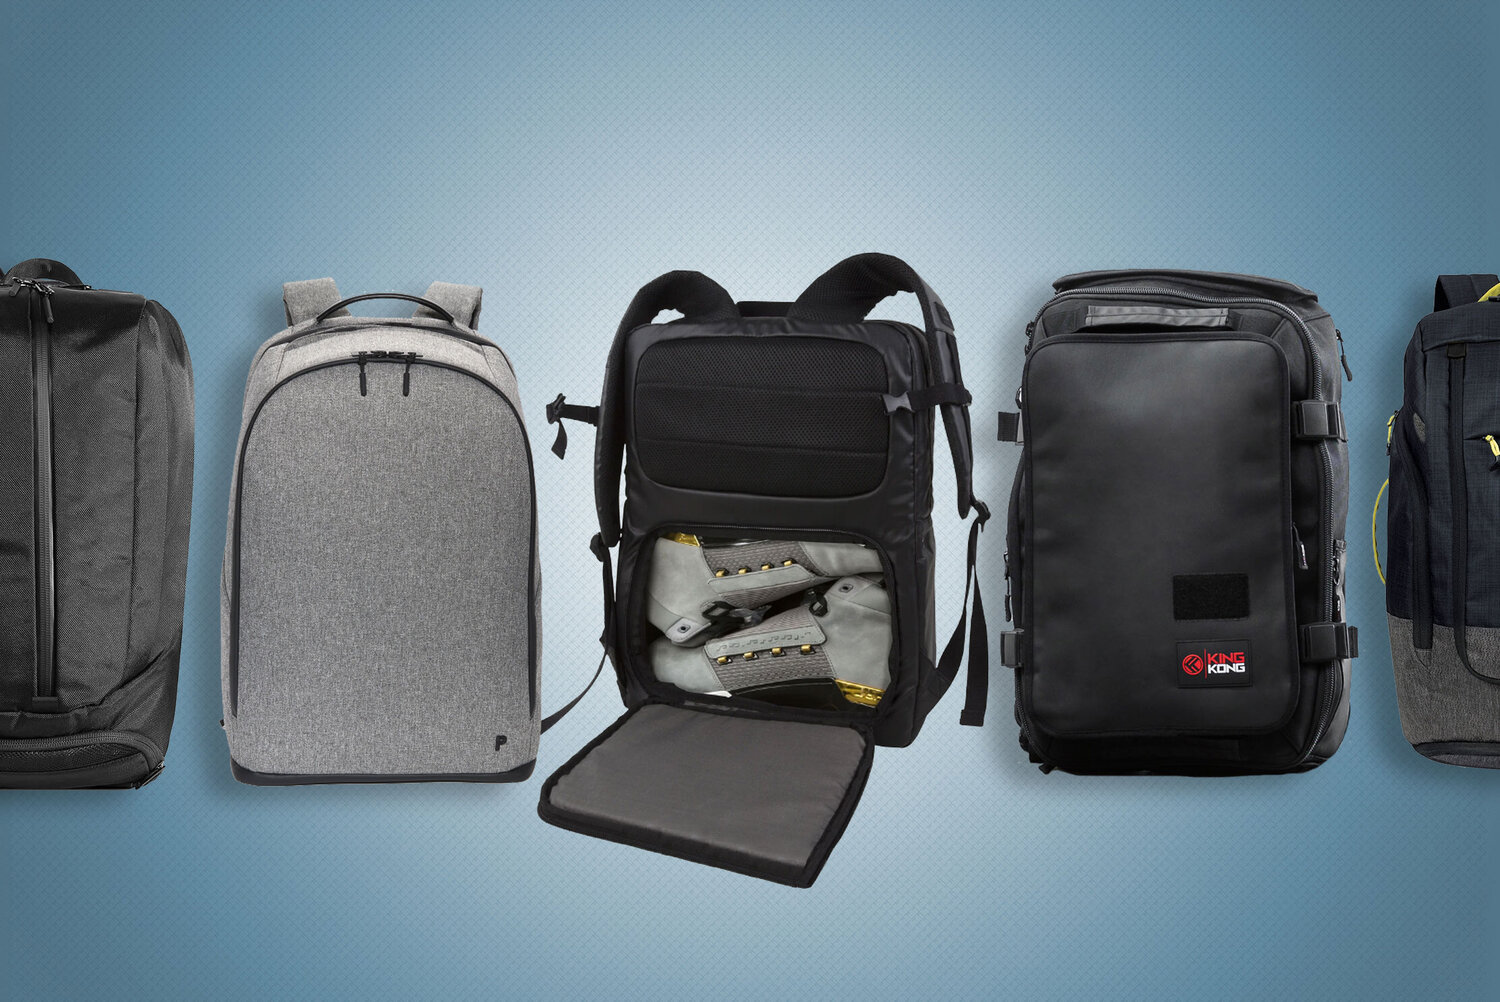 a28fda801941 Best Backpacks with Shoe Compartments - Top Work to Gym Bags ...